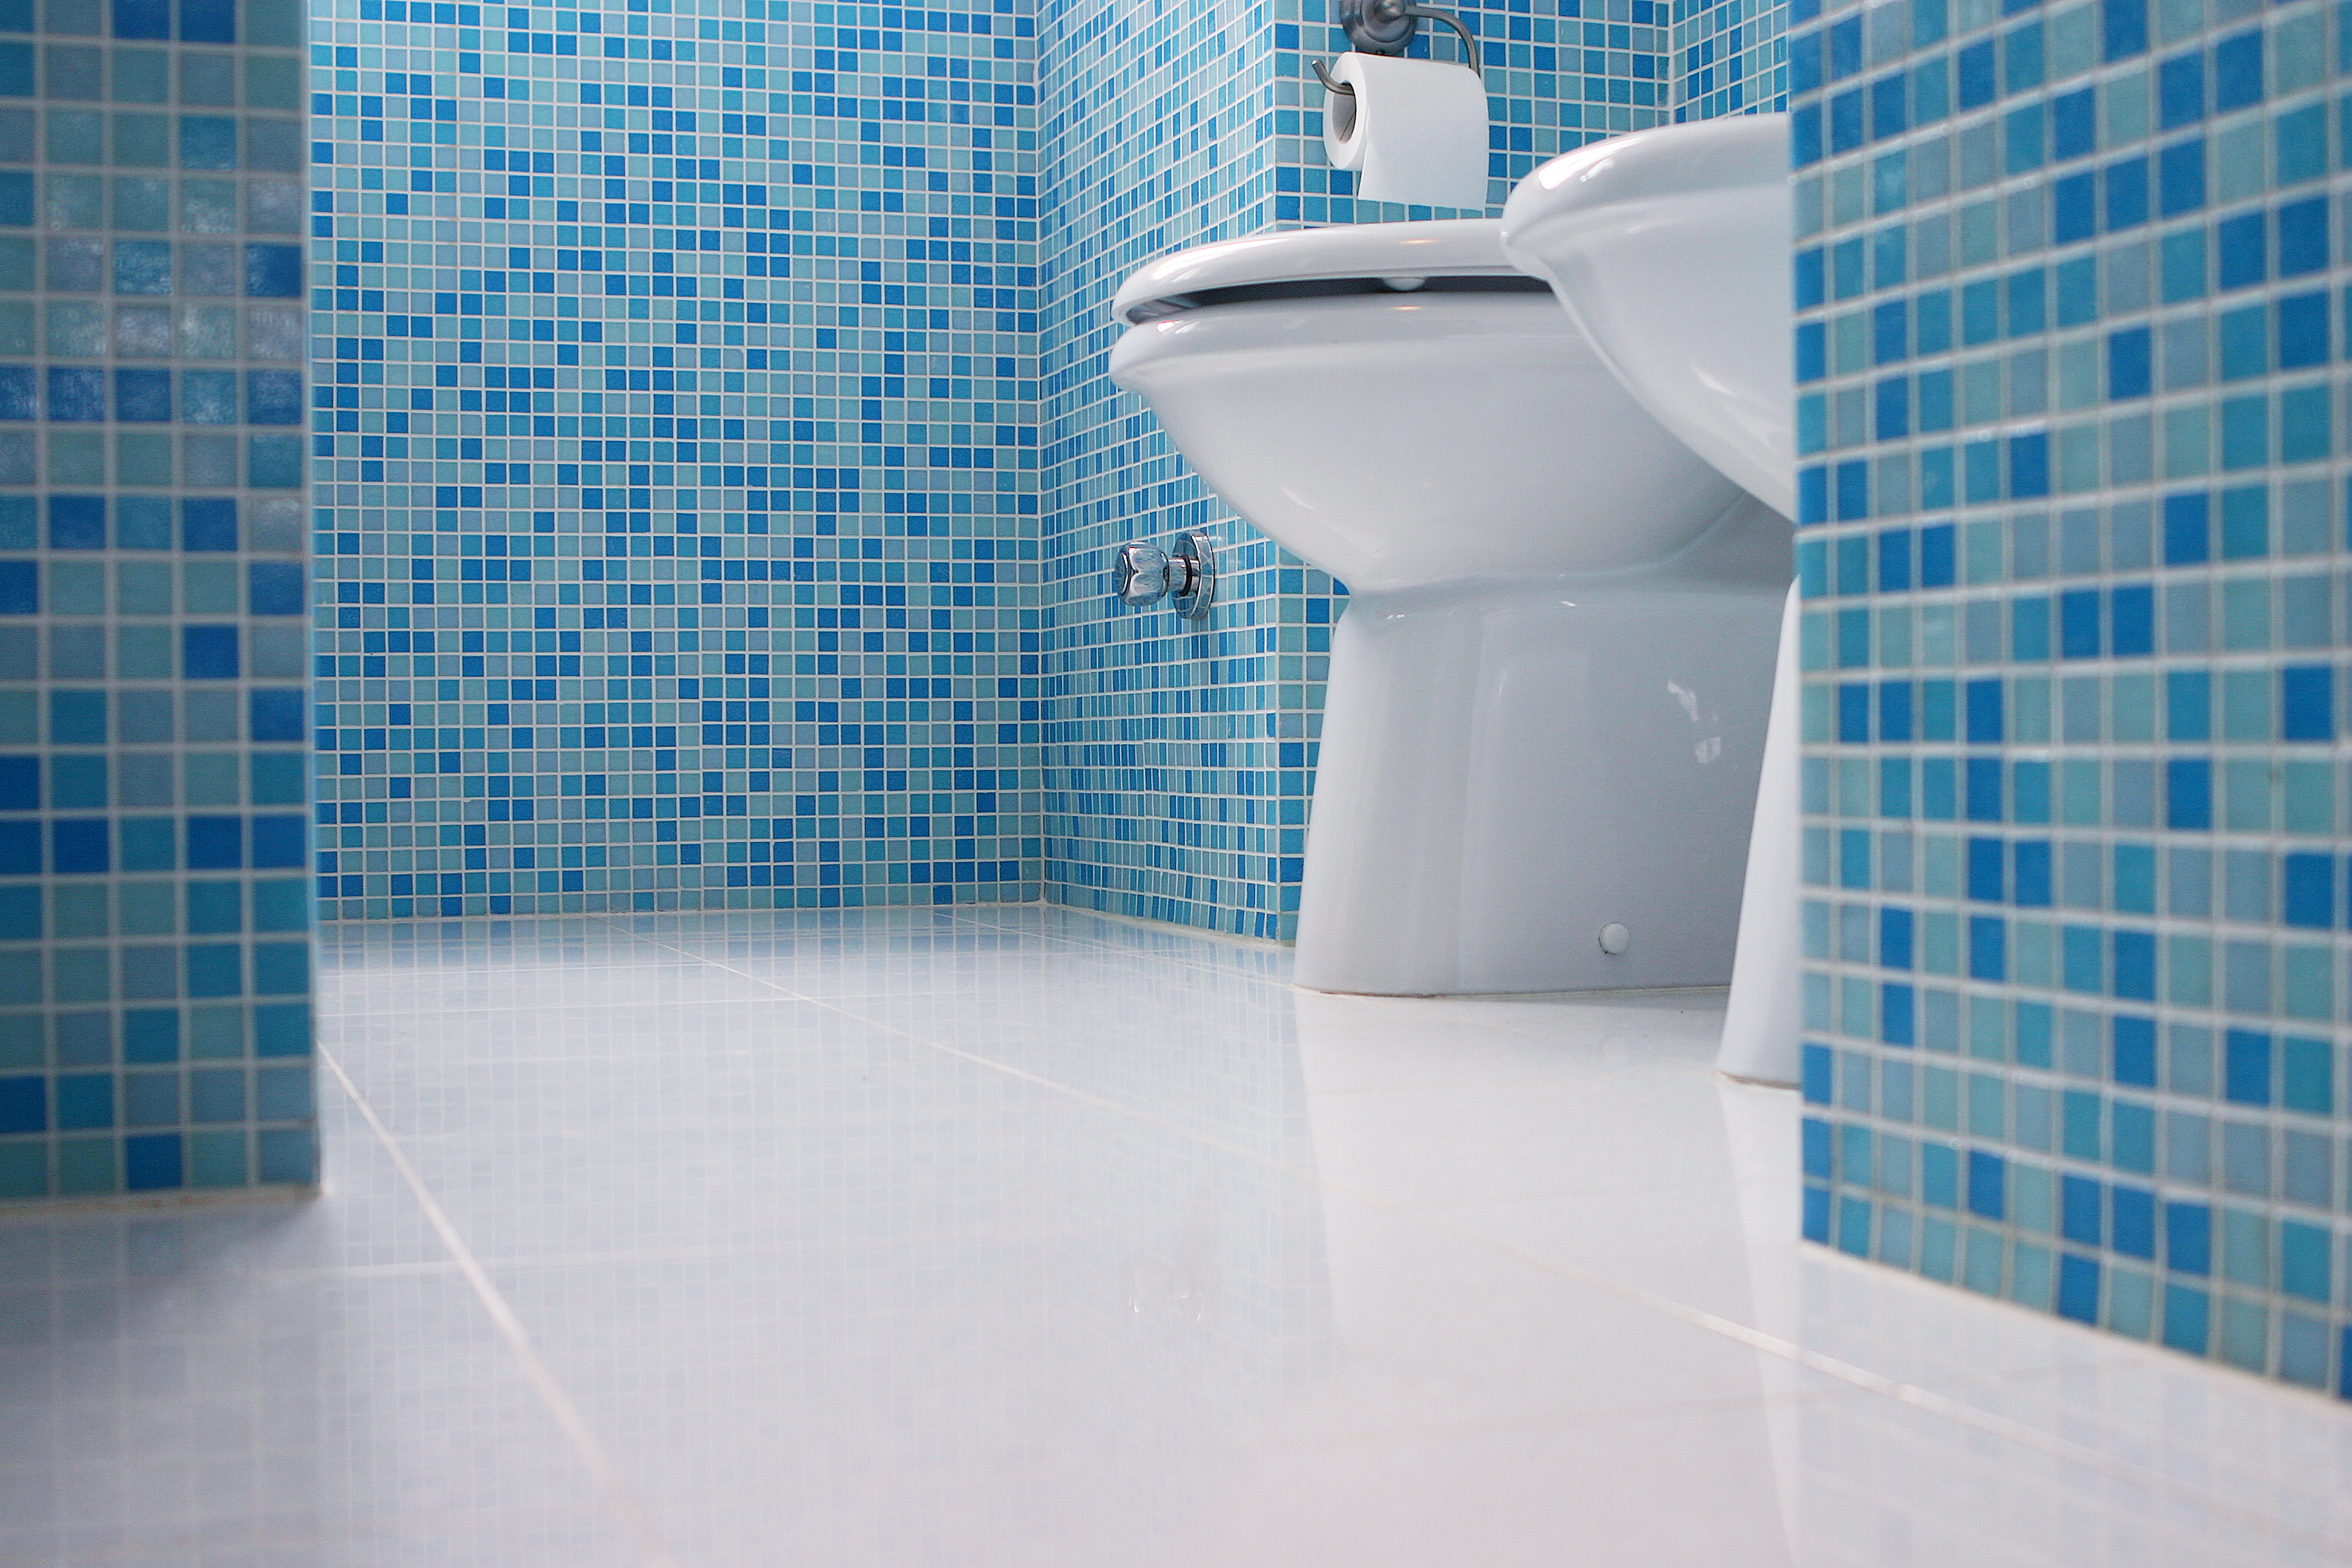 Ordinaire Best Way To Clean Tile Grout Clean Sleek Blue Tile Bathroom